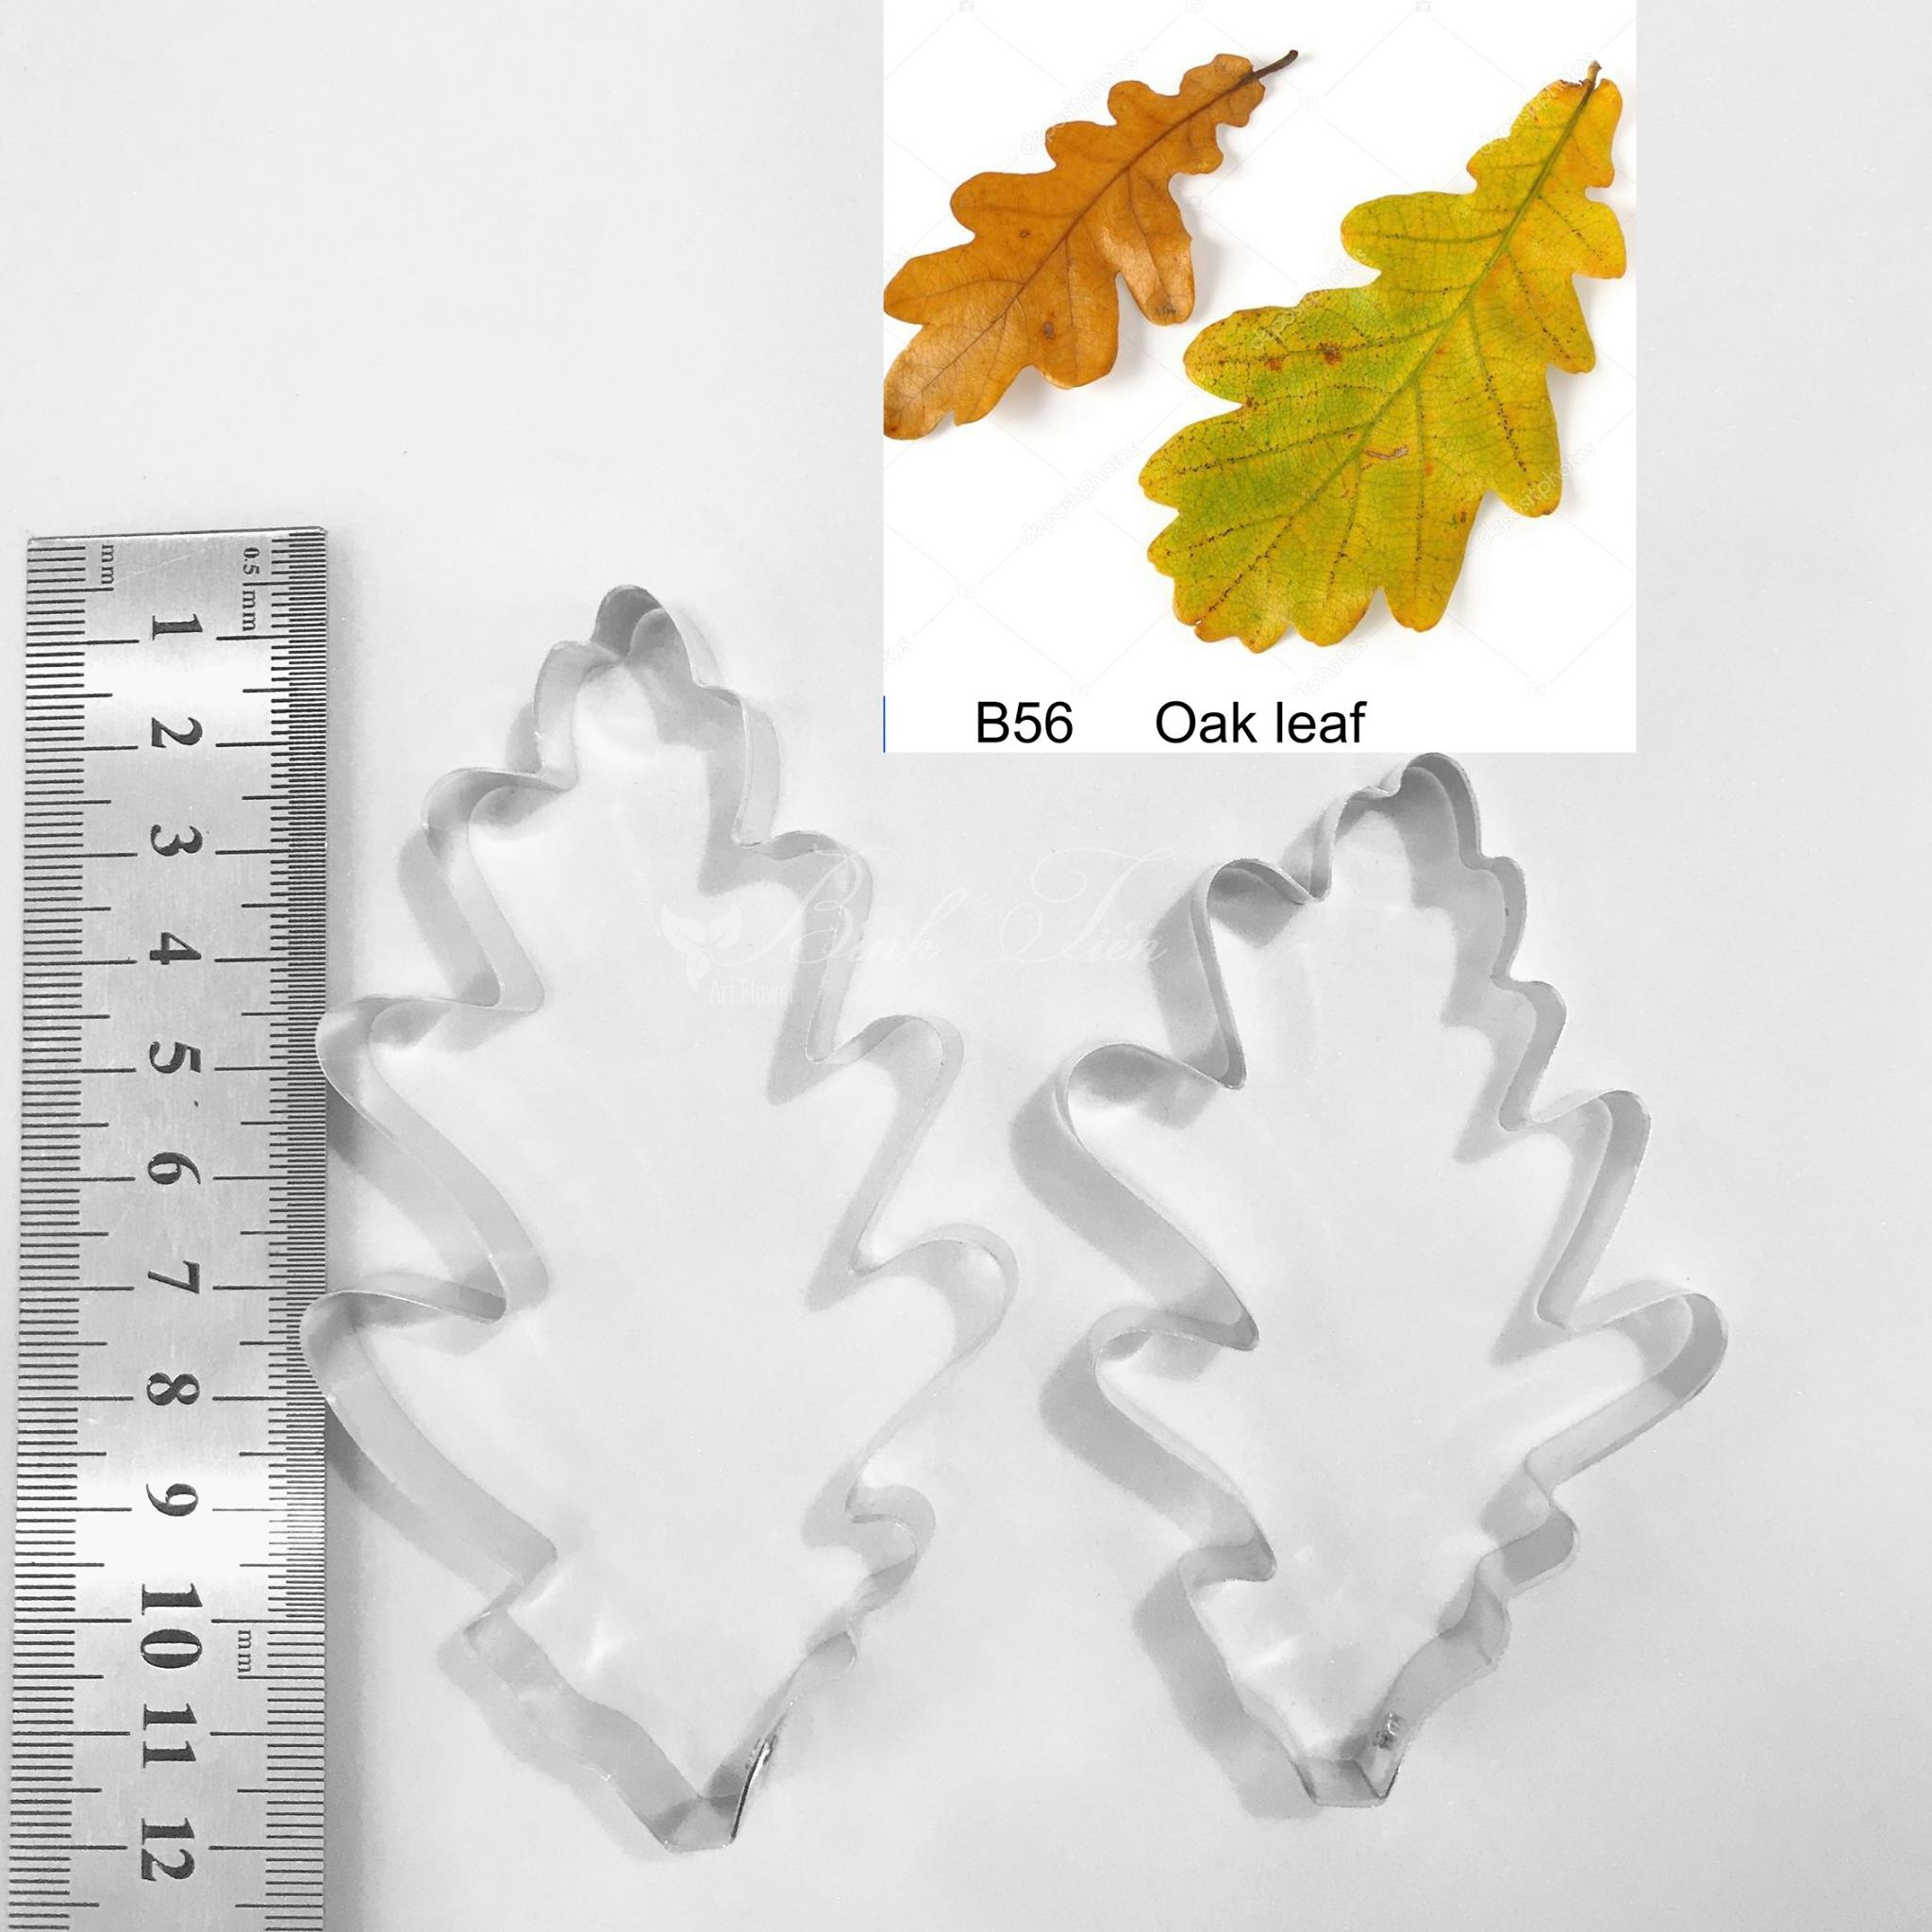 Oak Leaf – Double Veiner Real Petal Leaf Flower Silicone Mould Mold Cutter Artificial Botanical For Gumspate Clay Flower Fondant Mastic With Regard To 2017 Oak Leaf Double Rings (View 5 of 25)